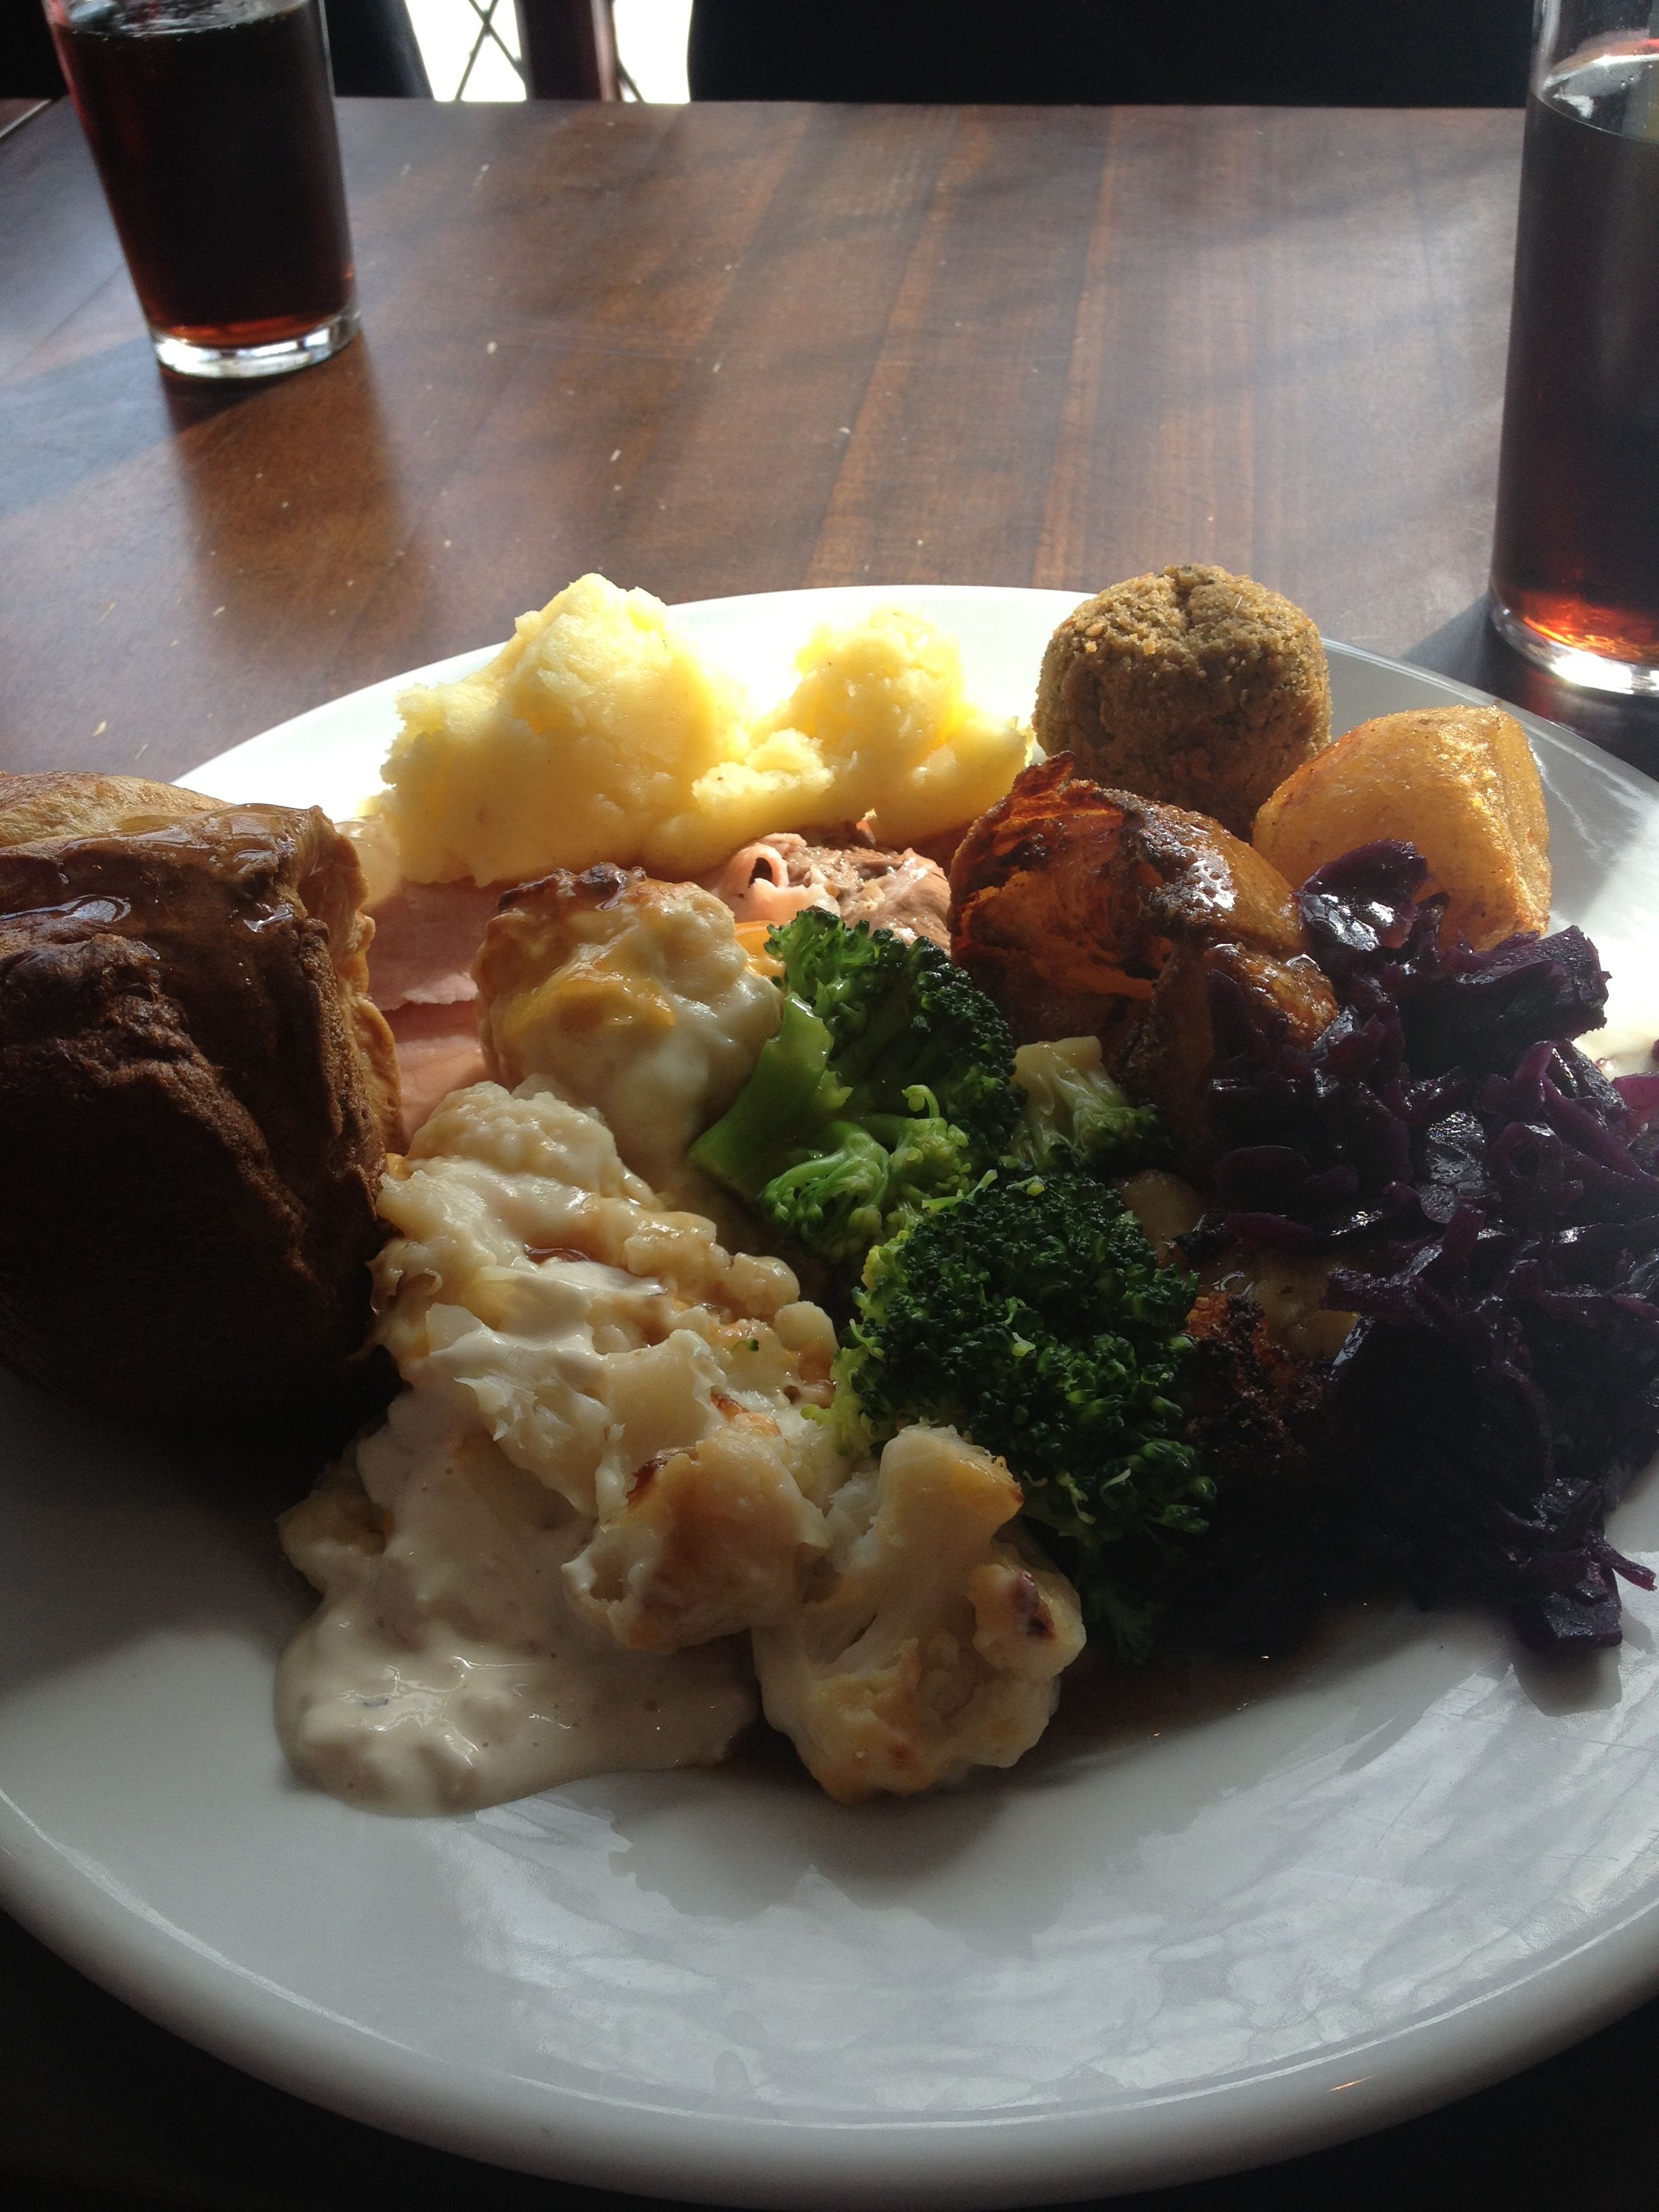 Carvery at The Gate in Clarborough with Nana and Grandad and my immediate family.